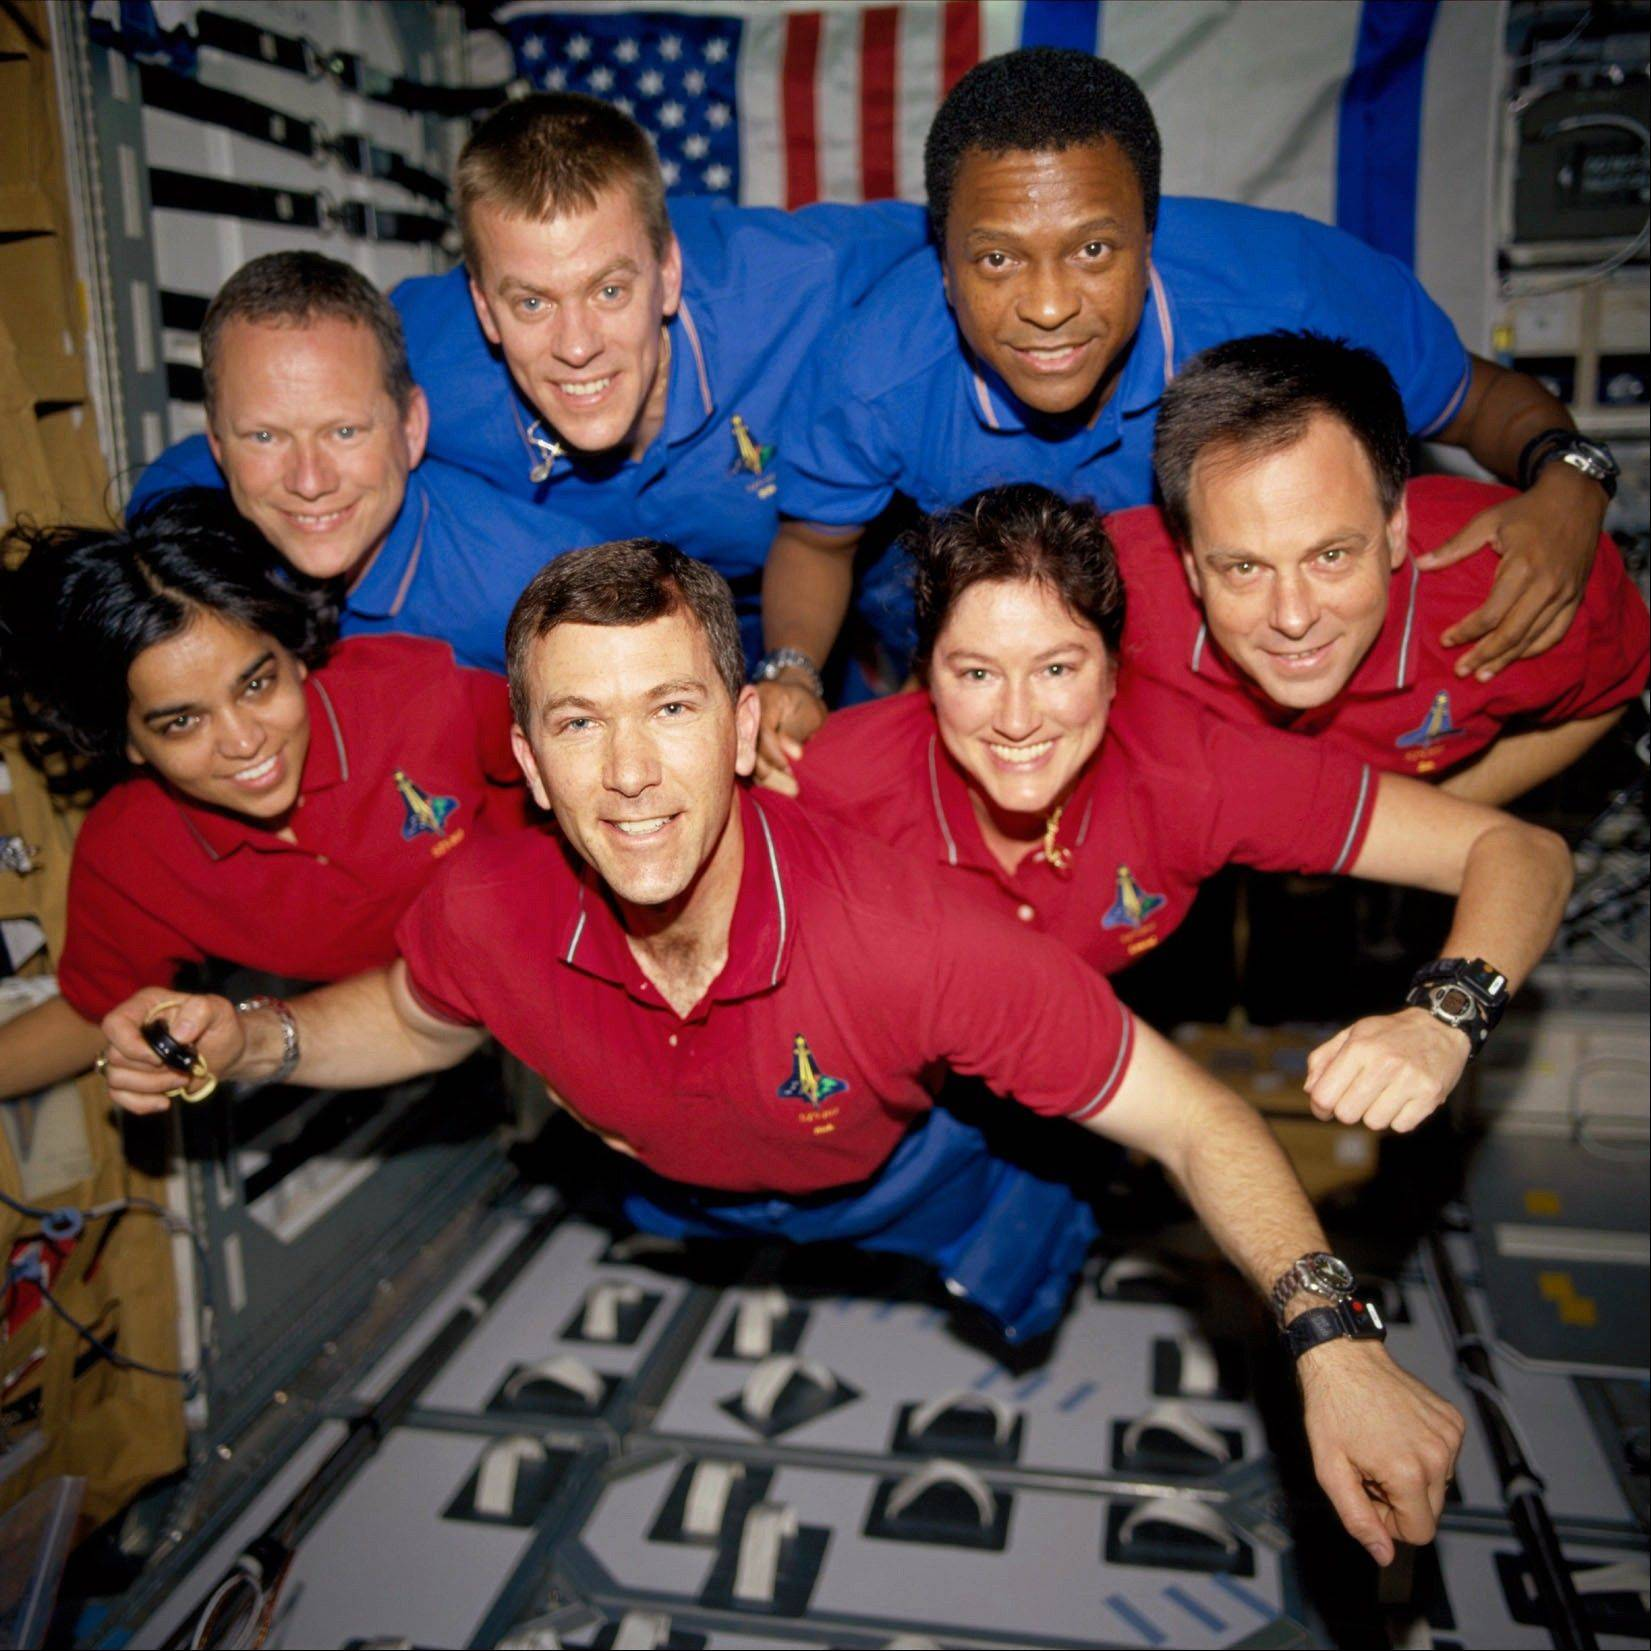 This photo provided by NASA in June 2003 shows STS-107 crew members in the SPACEHAB Research Double Module (RDM) aboard the Space Shuttle Columbia. On Feb. 1, 2003, the seven crew members were lost as the Columbia fell apart over East Texas. This picture was on a roll of unprocessed film later recovered by searchers from the debris. From the left (bottom row), wearing red shirts to signify their shift�s color, are astronauts Kalpana Chawla, mission specialist; Rick D. Husband, mission commander; Laurel B. Clark, mission specialist; and Ilan Ramon, payload specialist. From the left (top row), wearing blue shirts, are astronauts David M. Brown, mission specialist; William C. McCool, pilot; and Michael P. Anderson, payload commander. Ramon represents the Israeli Space Agency.